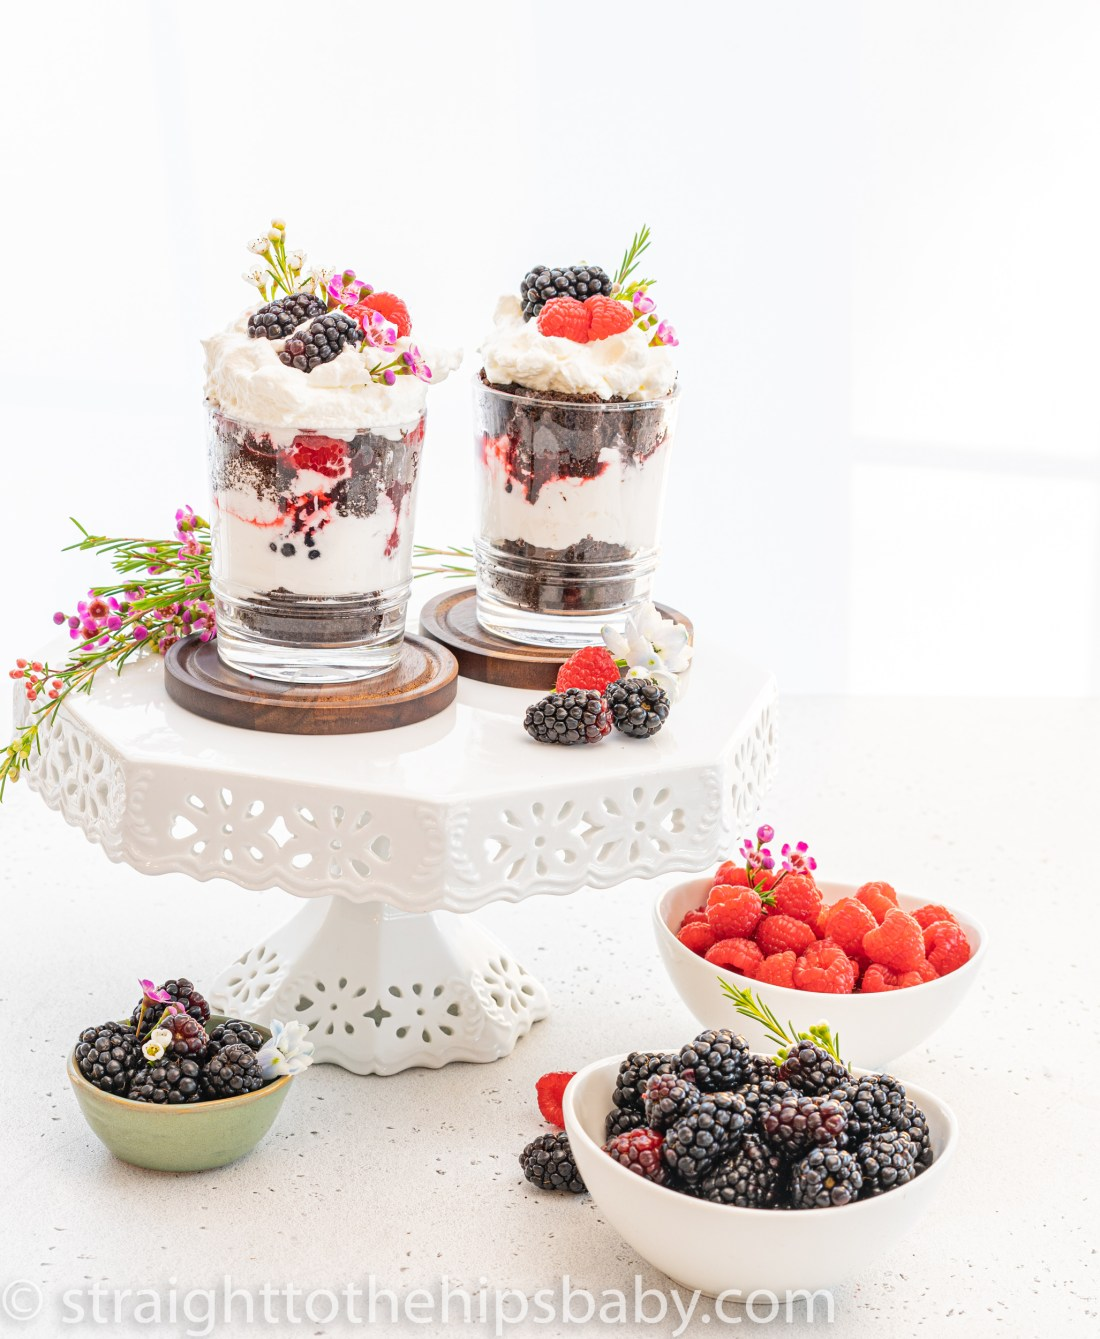 two chocolate raspberry trifles on white cake stand with flowers and bowls of berries